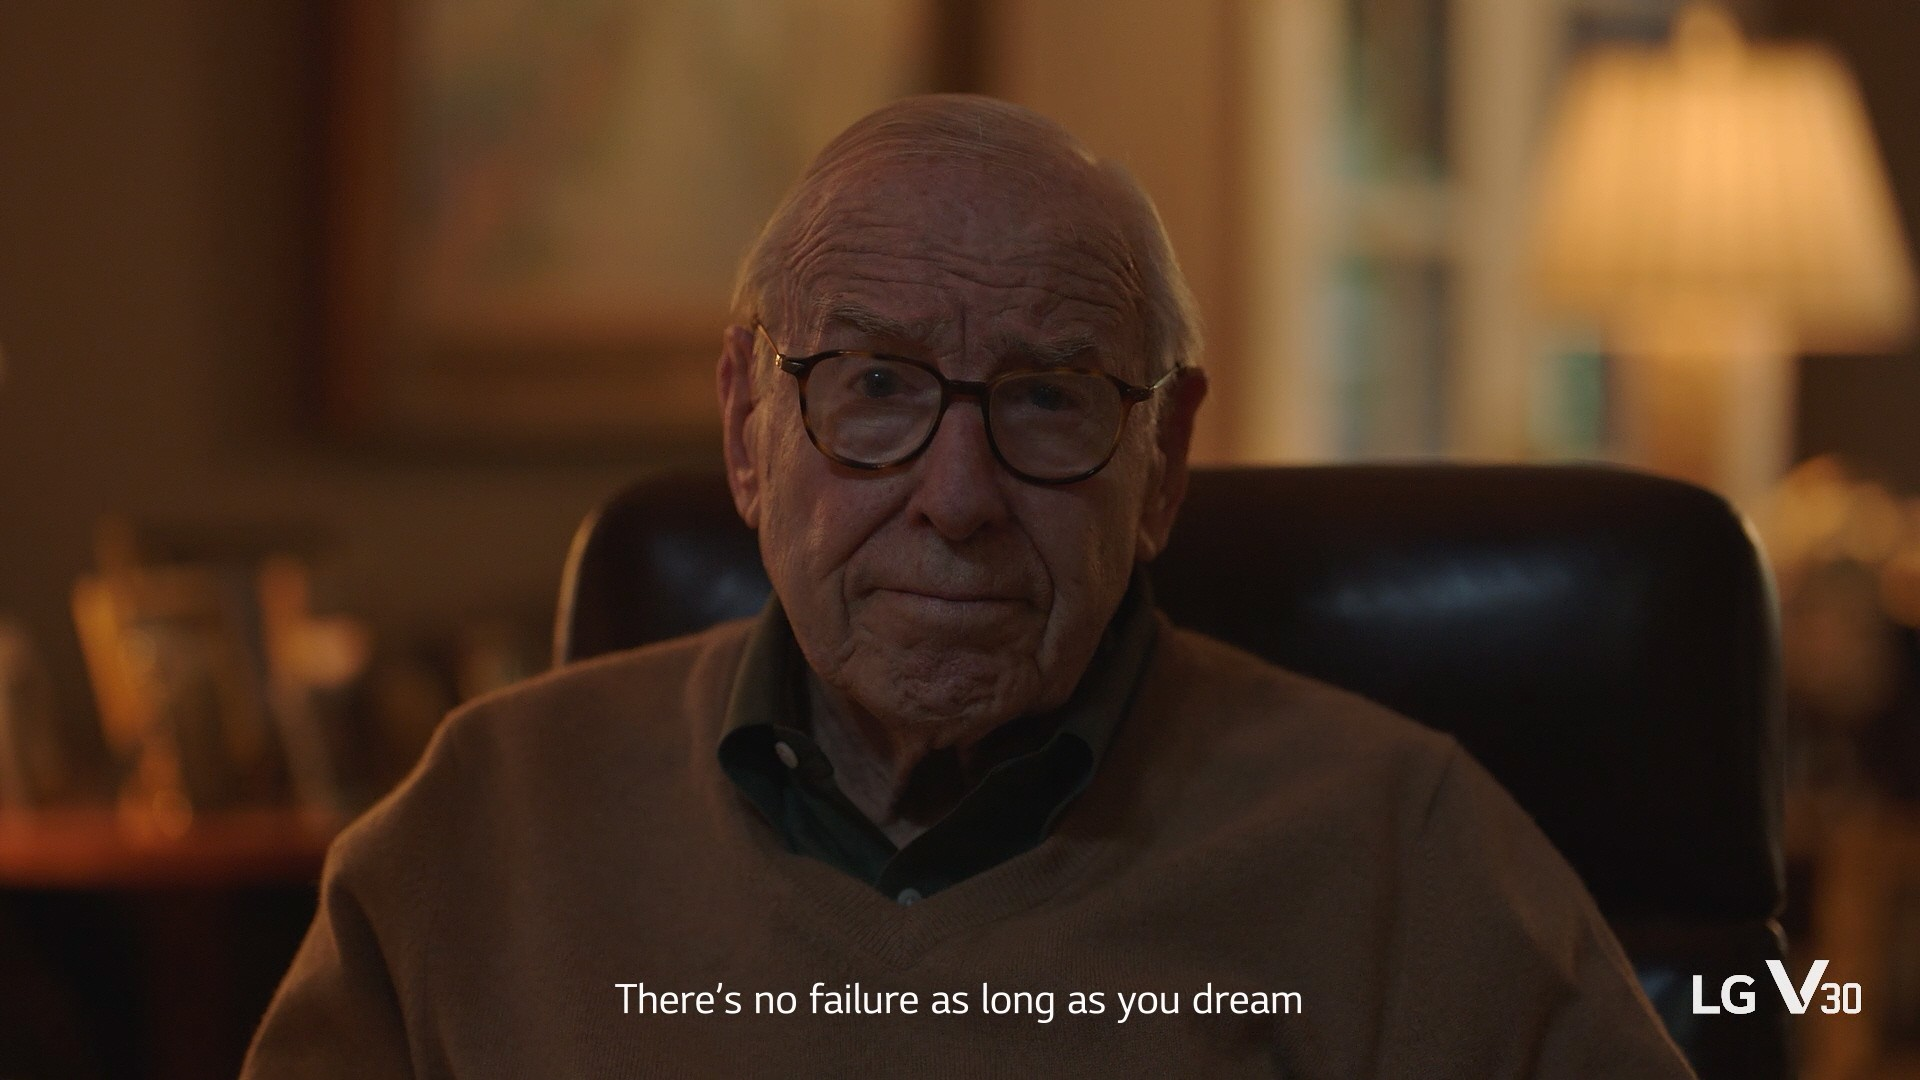 Screenshot of an LG advertisement featuring octogenarian astronaut Jim Lovell experiencing a moonwalk in VR, with the help of the LG V30 and Google Daydream